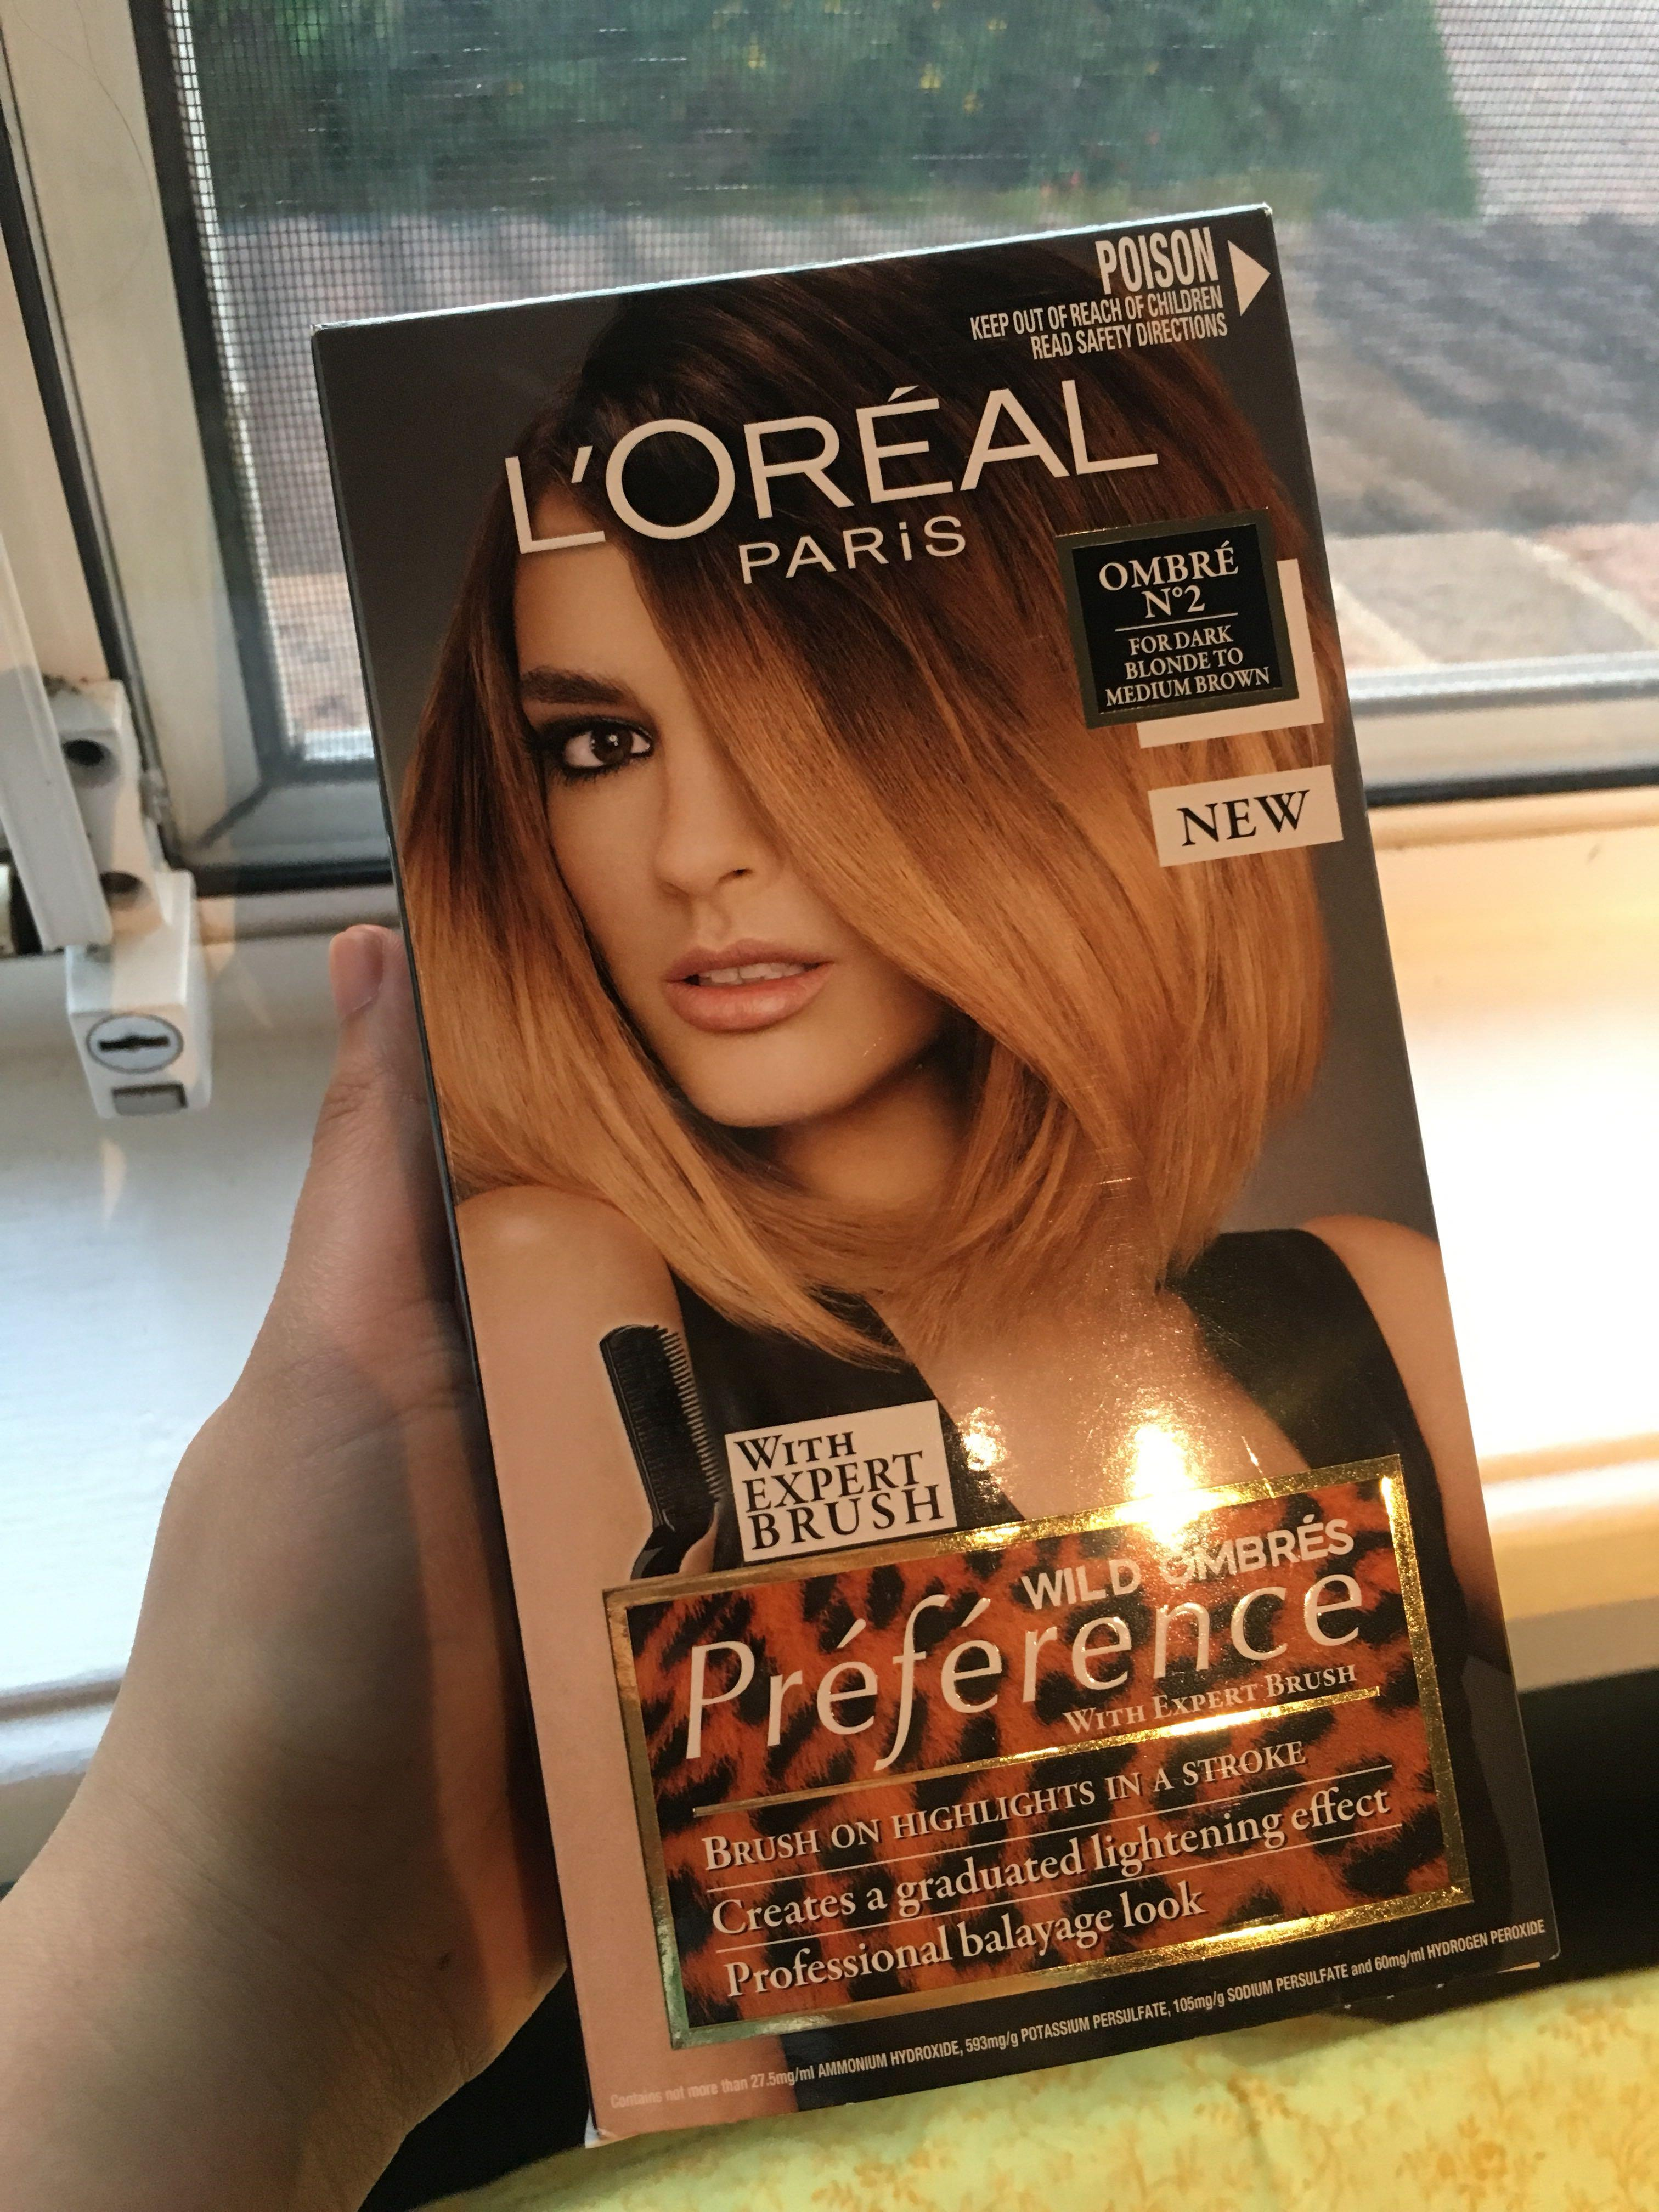 L'oreal paris preference wild ombre 02 for dark blonde to medium brown